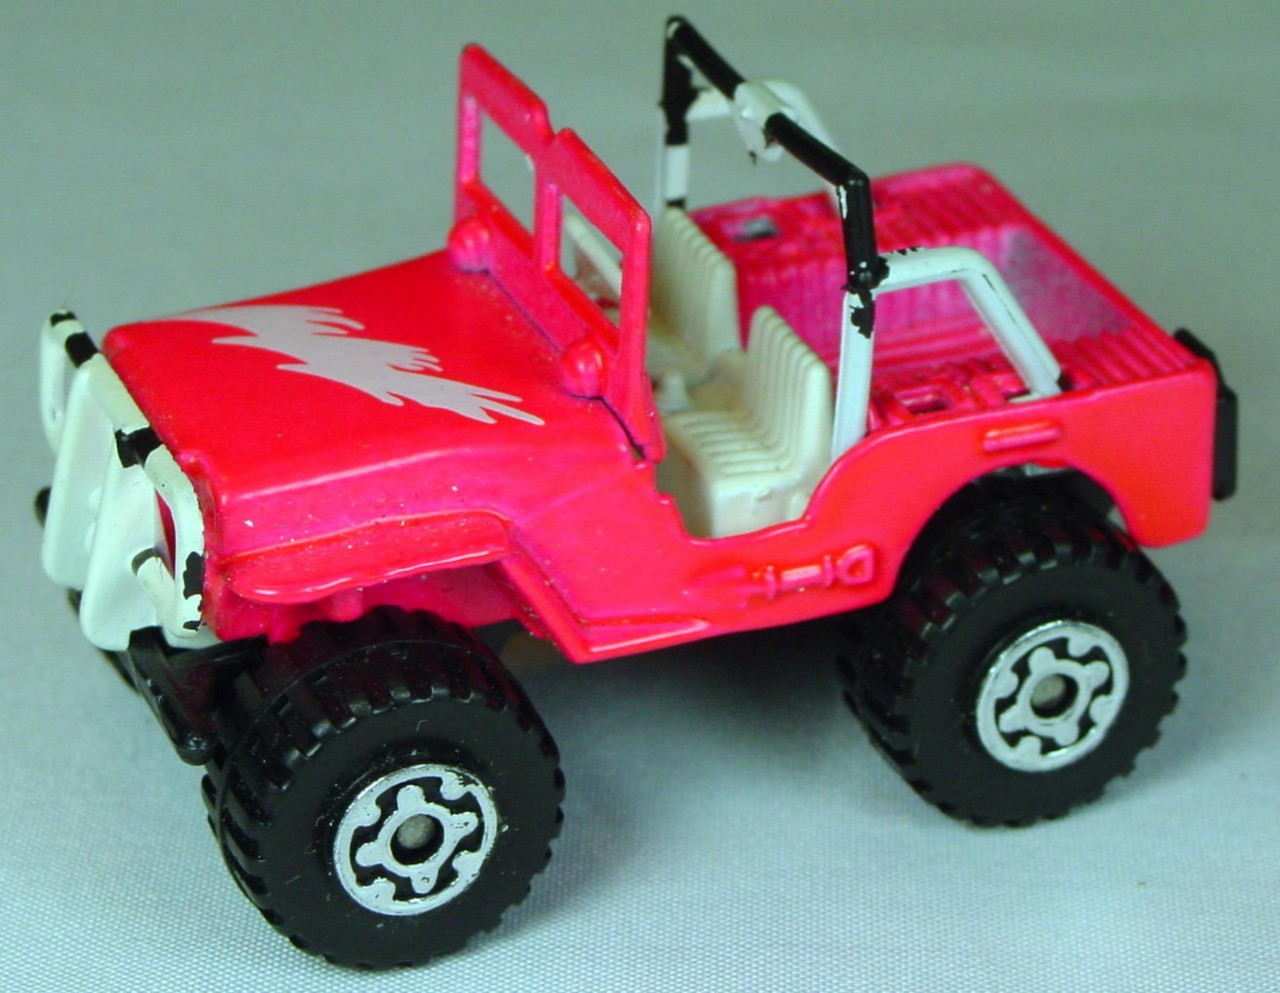 Pre-production 05 D 9 - Jeep 4x4 hot Pink Bolt STICKER white rollbar made in Thailand